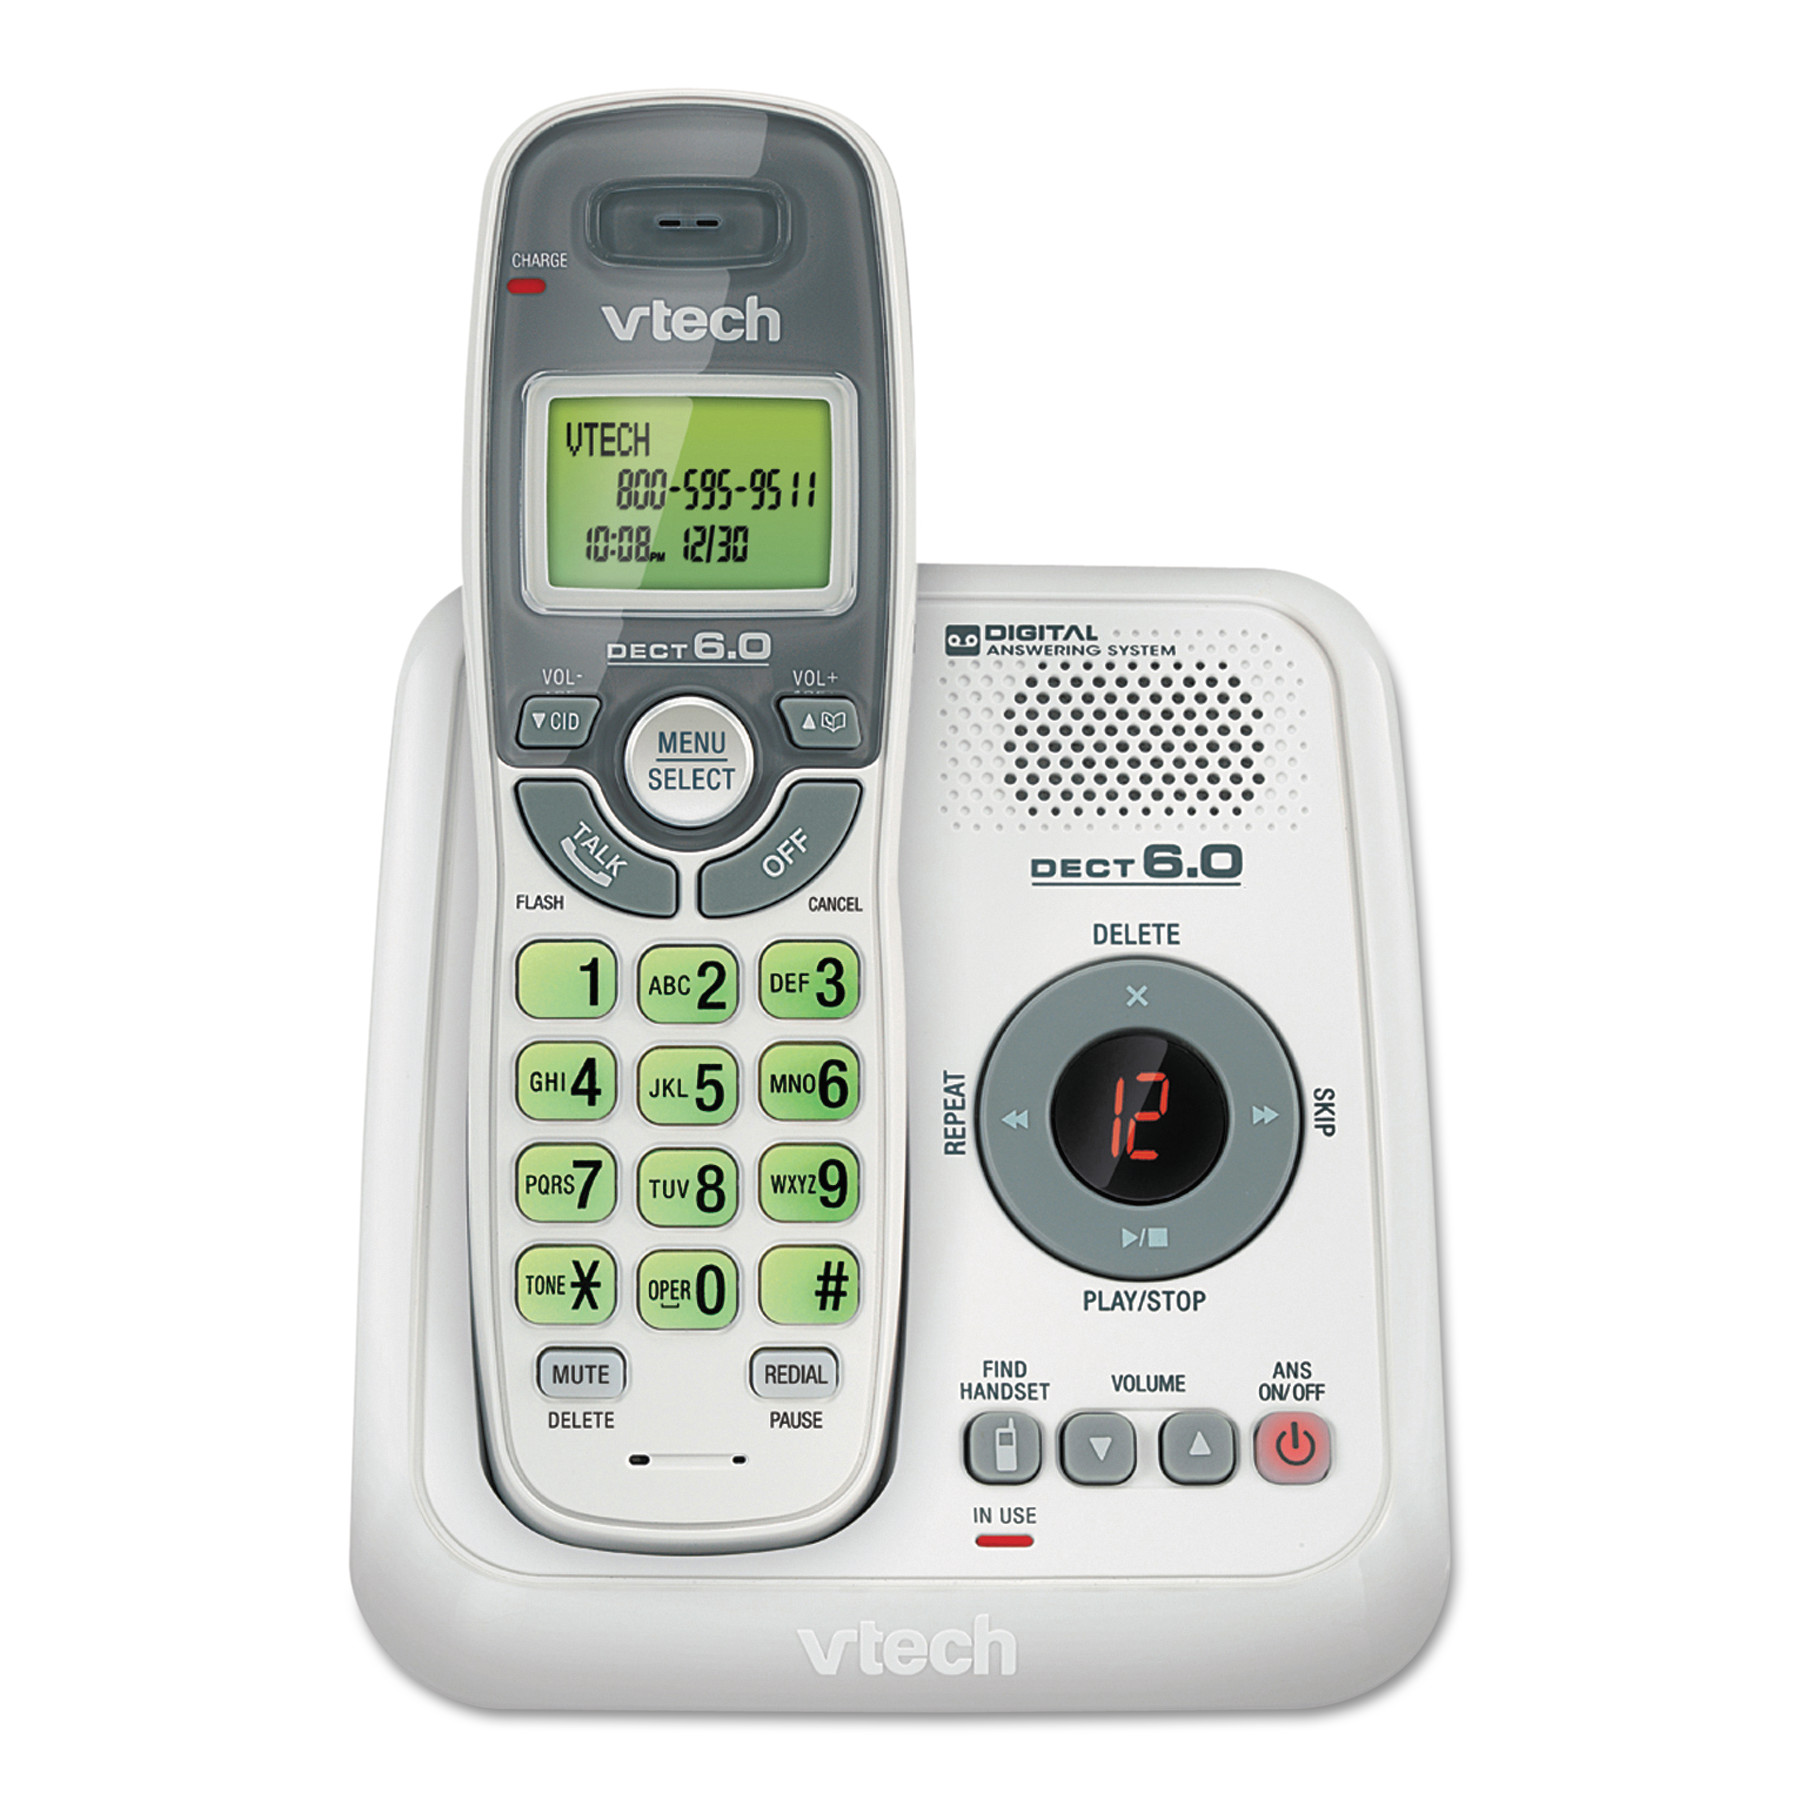 Vtech CS6124 Cordless Answering System